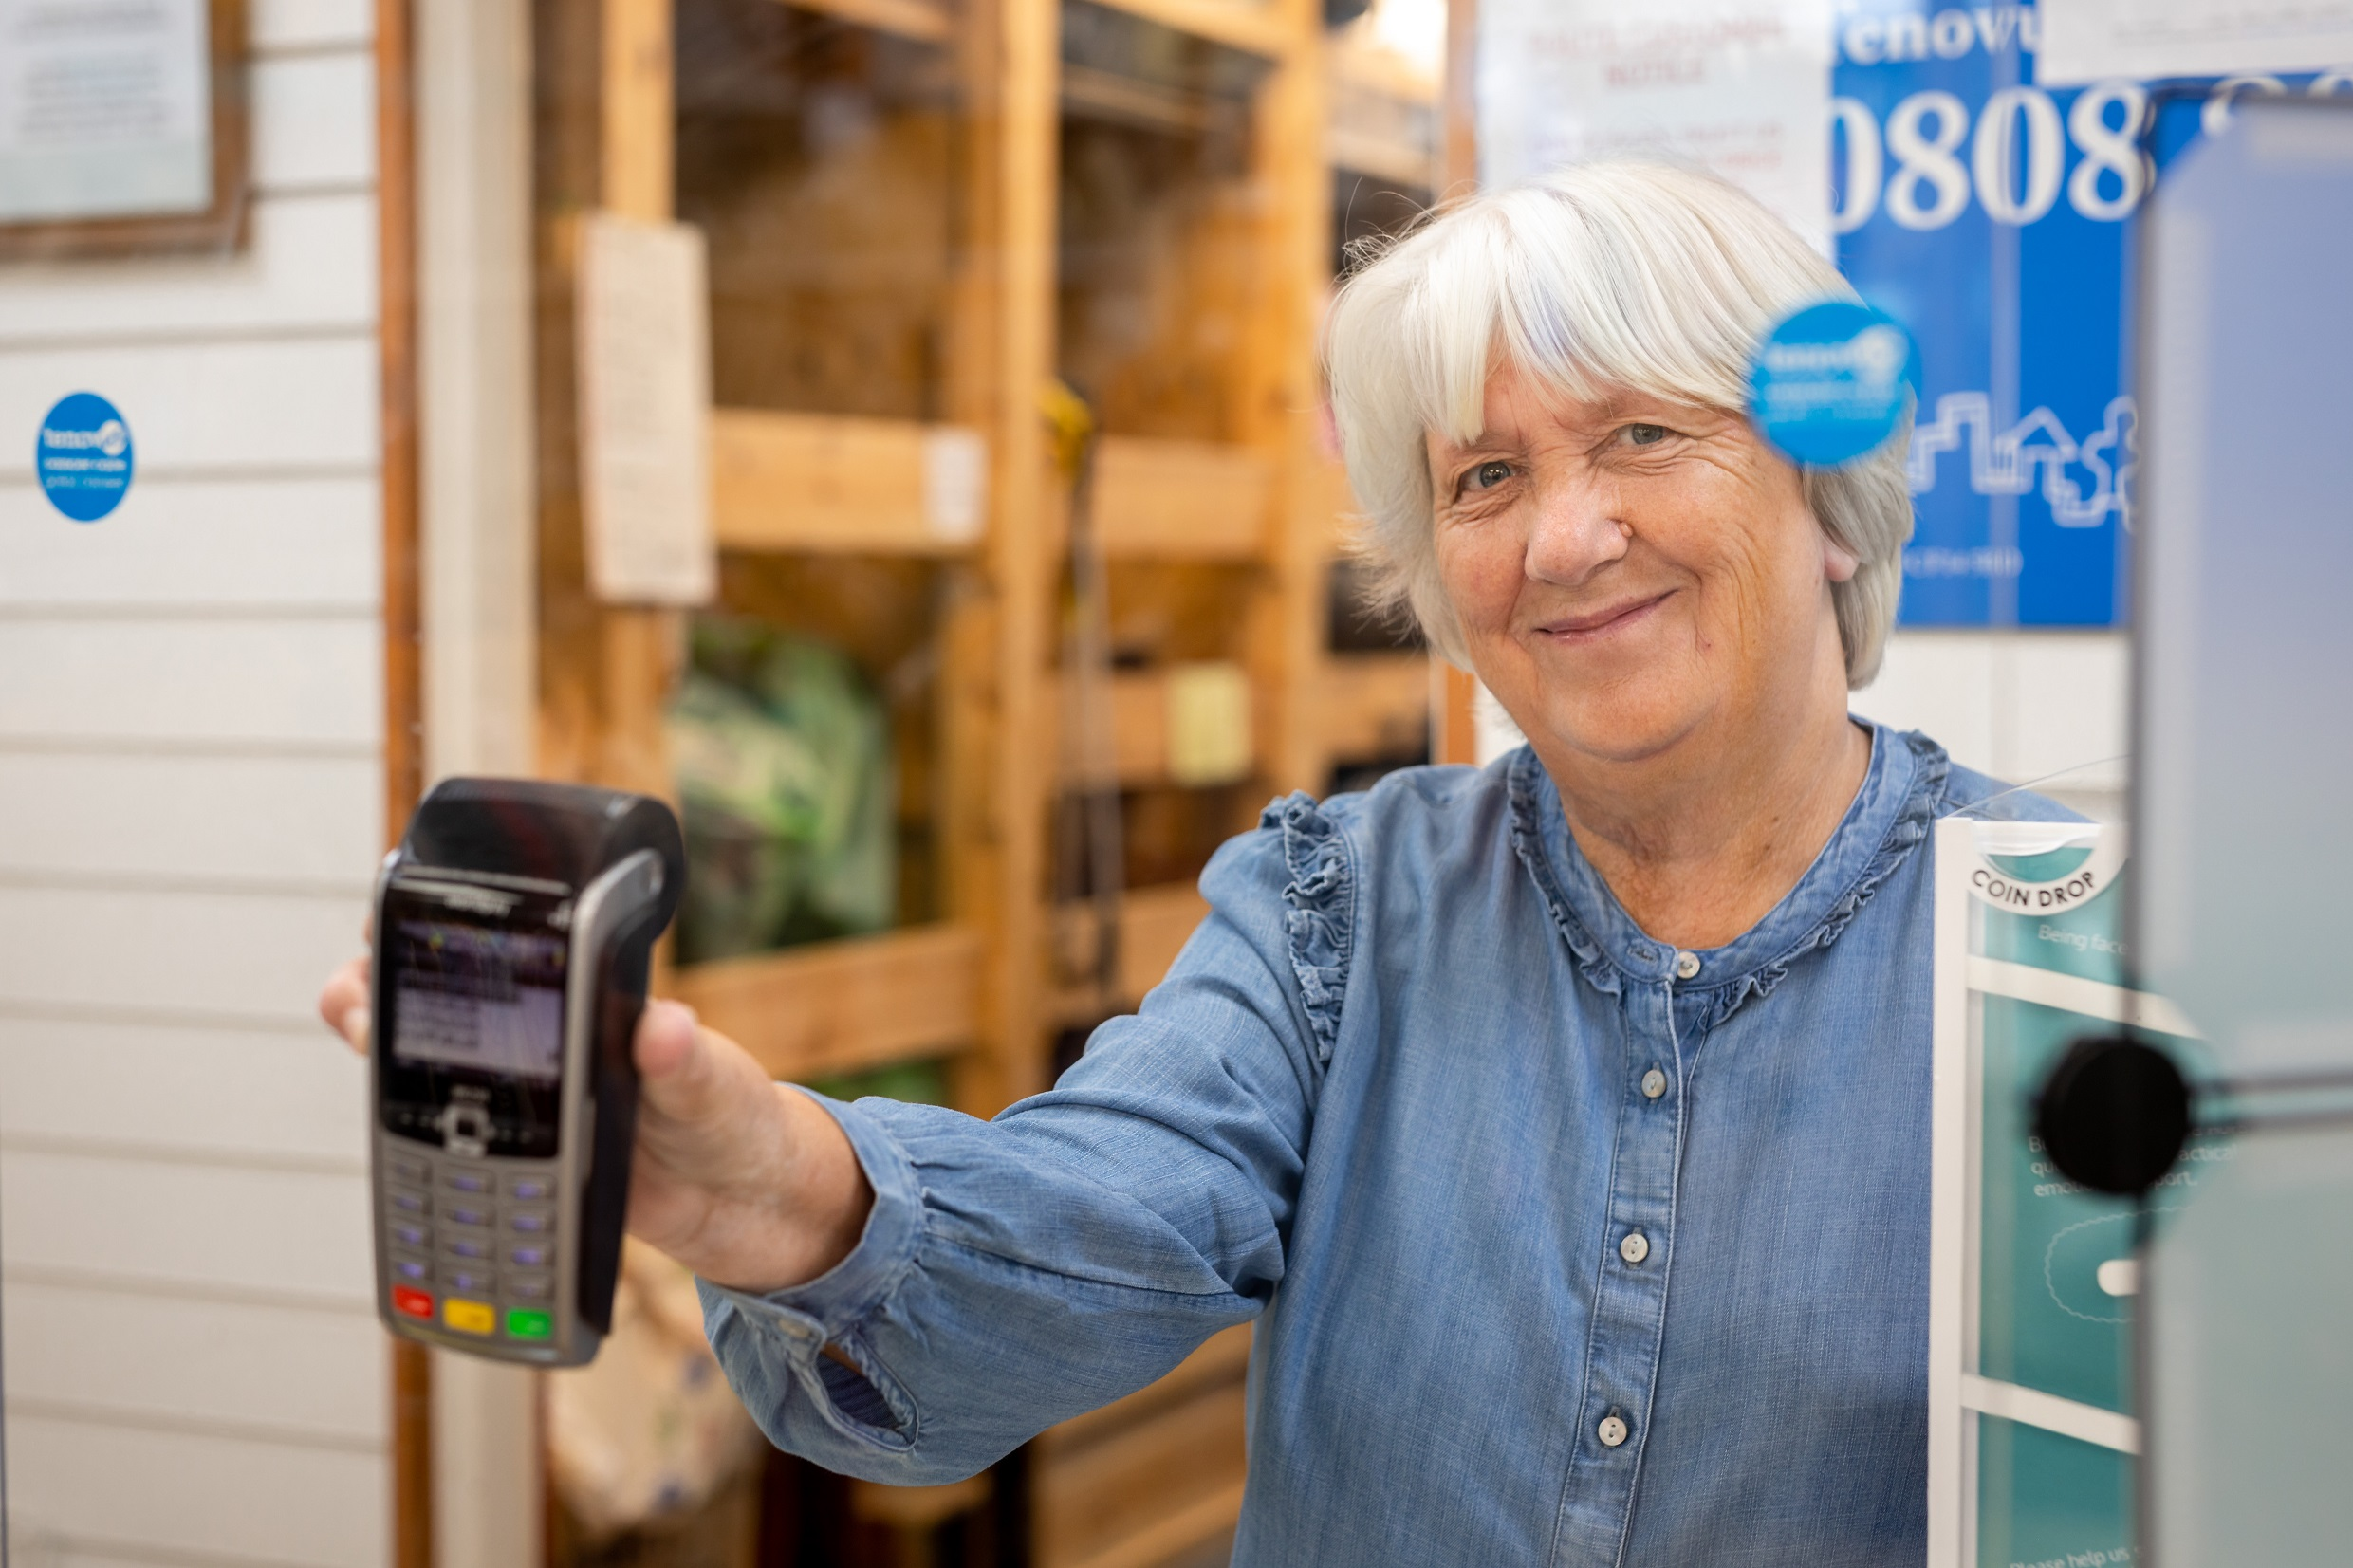 Tenovus Cancer Care charity shop volunteer smiles and holds up contactless payment terminal to a perspex protective screen